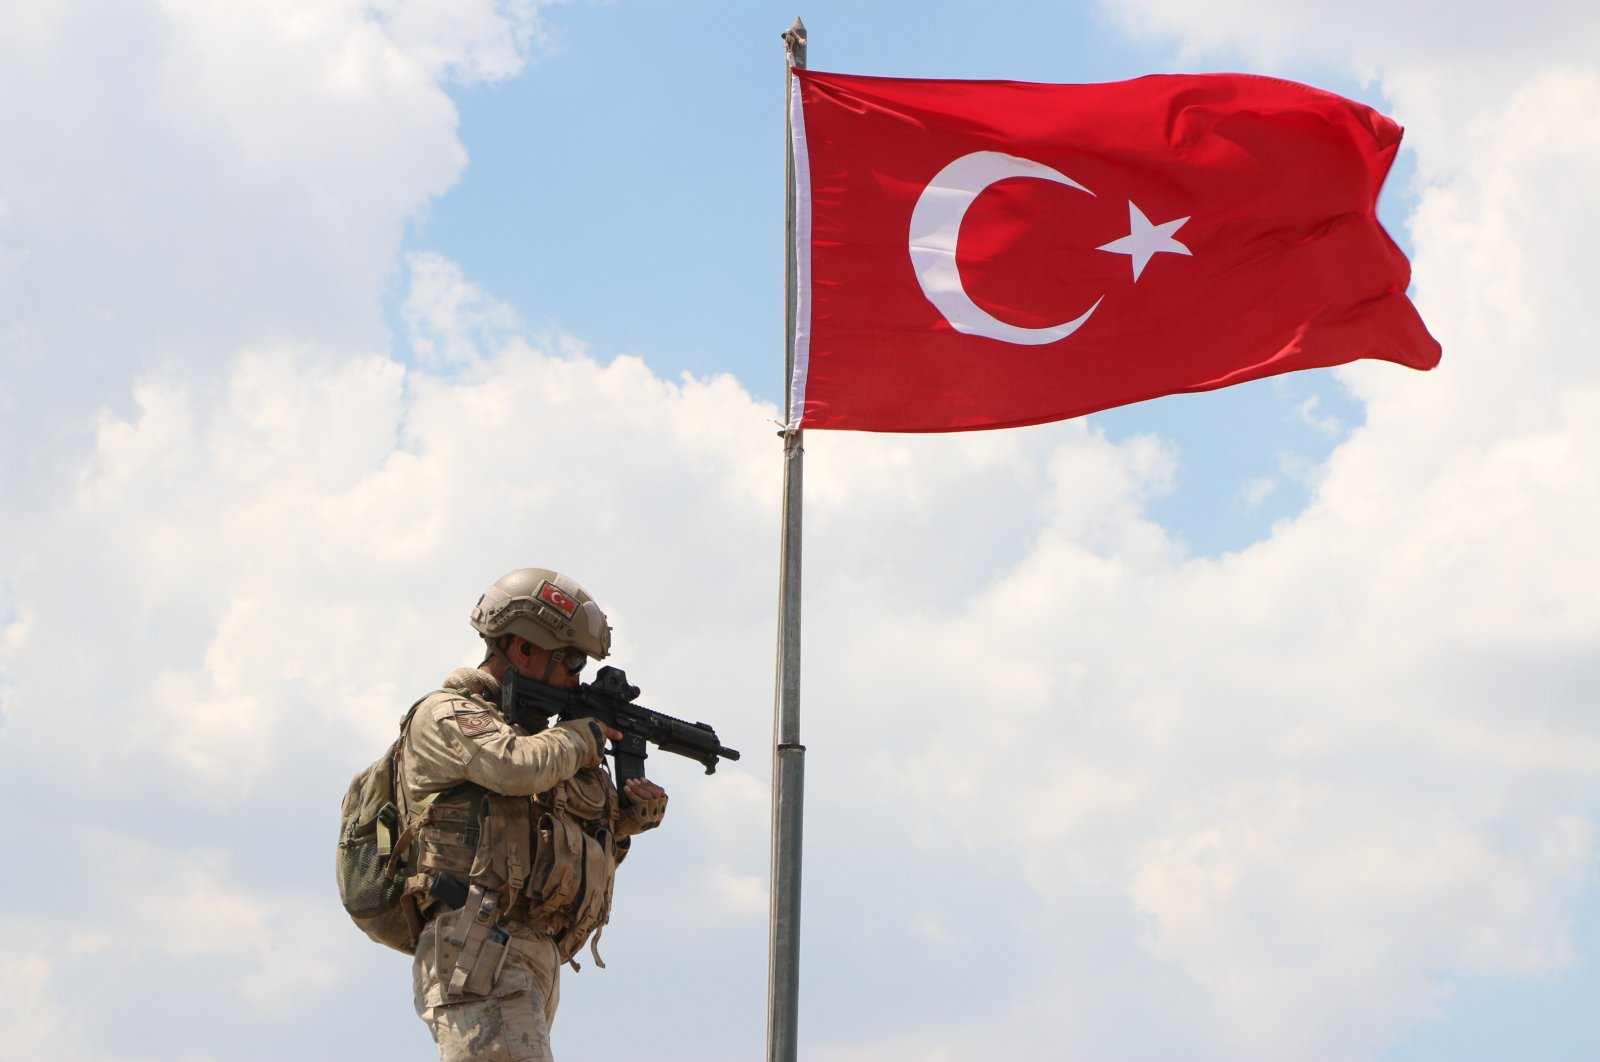 Turkish security forces conduct an operation against the PKK terrorist organization in Şırnak province, Turkey, July 15, 2020. (DHA Photo)